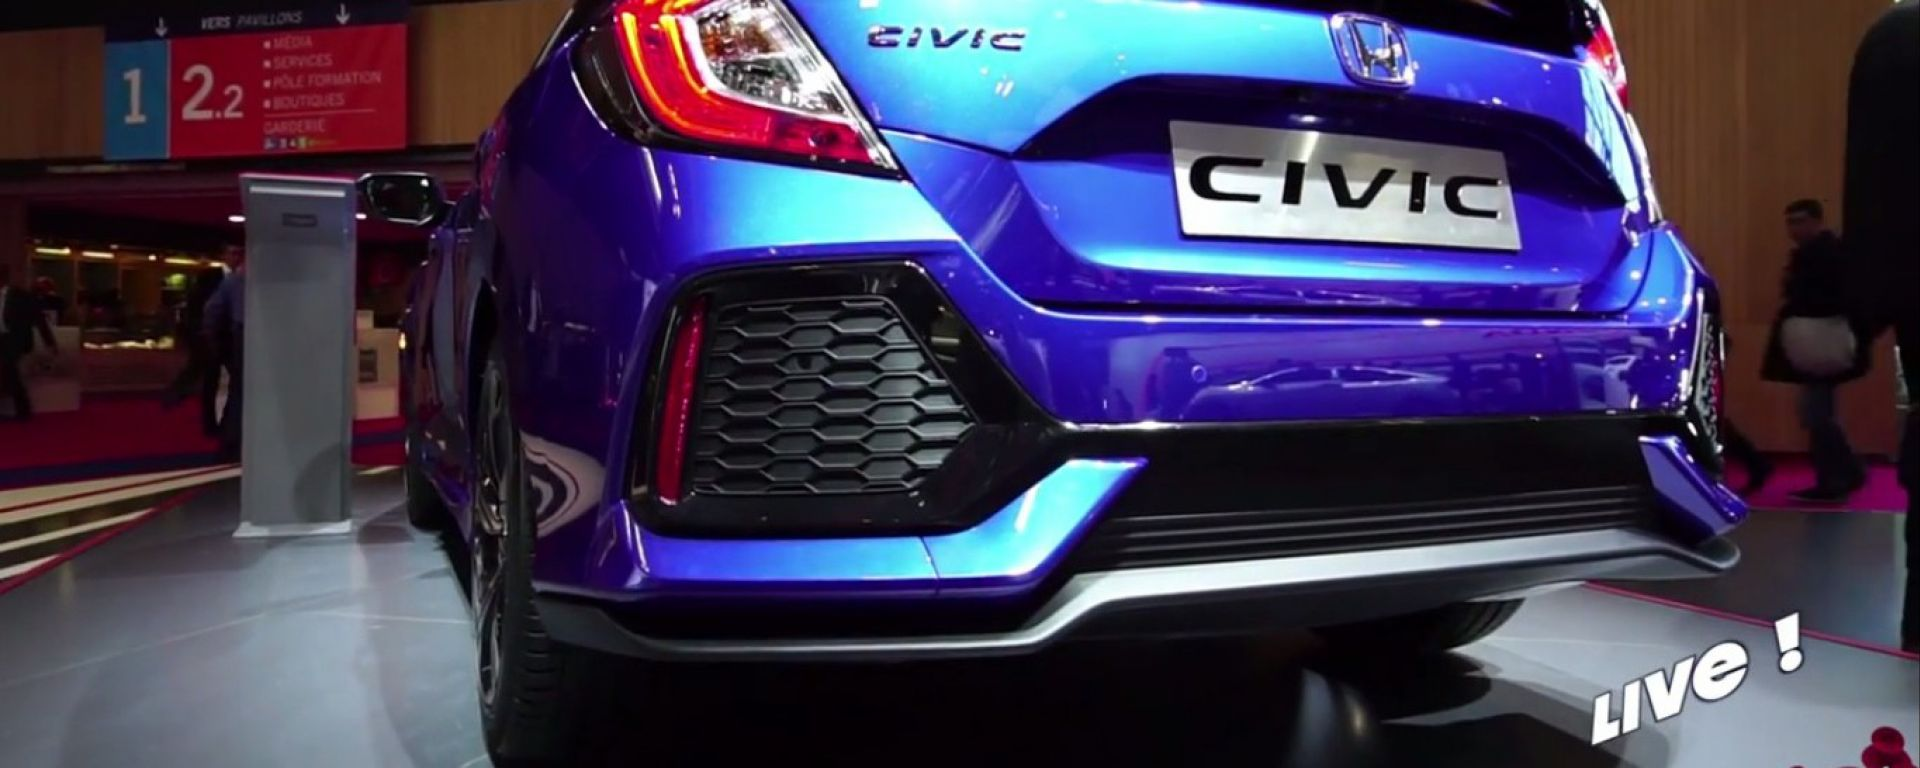 Live Parigi 2016: Honda Civic, Type-R e Civic Sedan in video